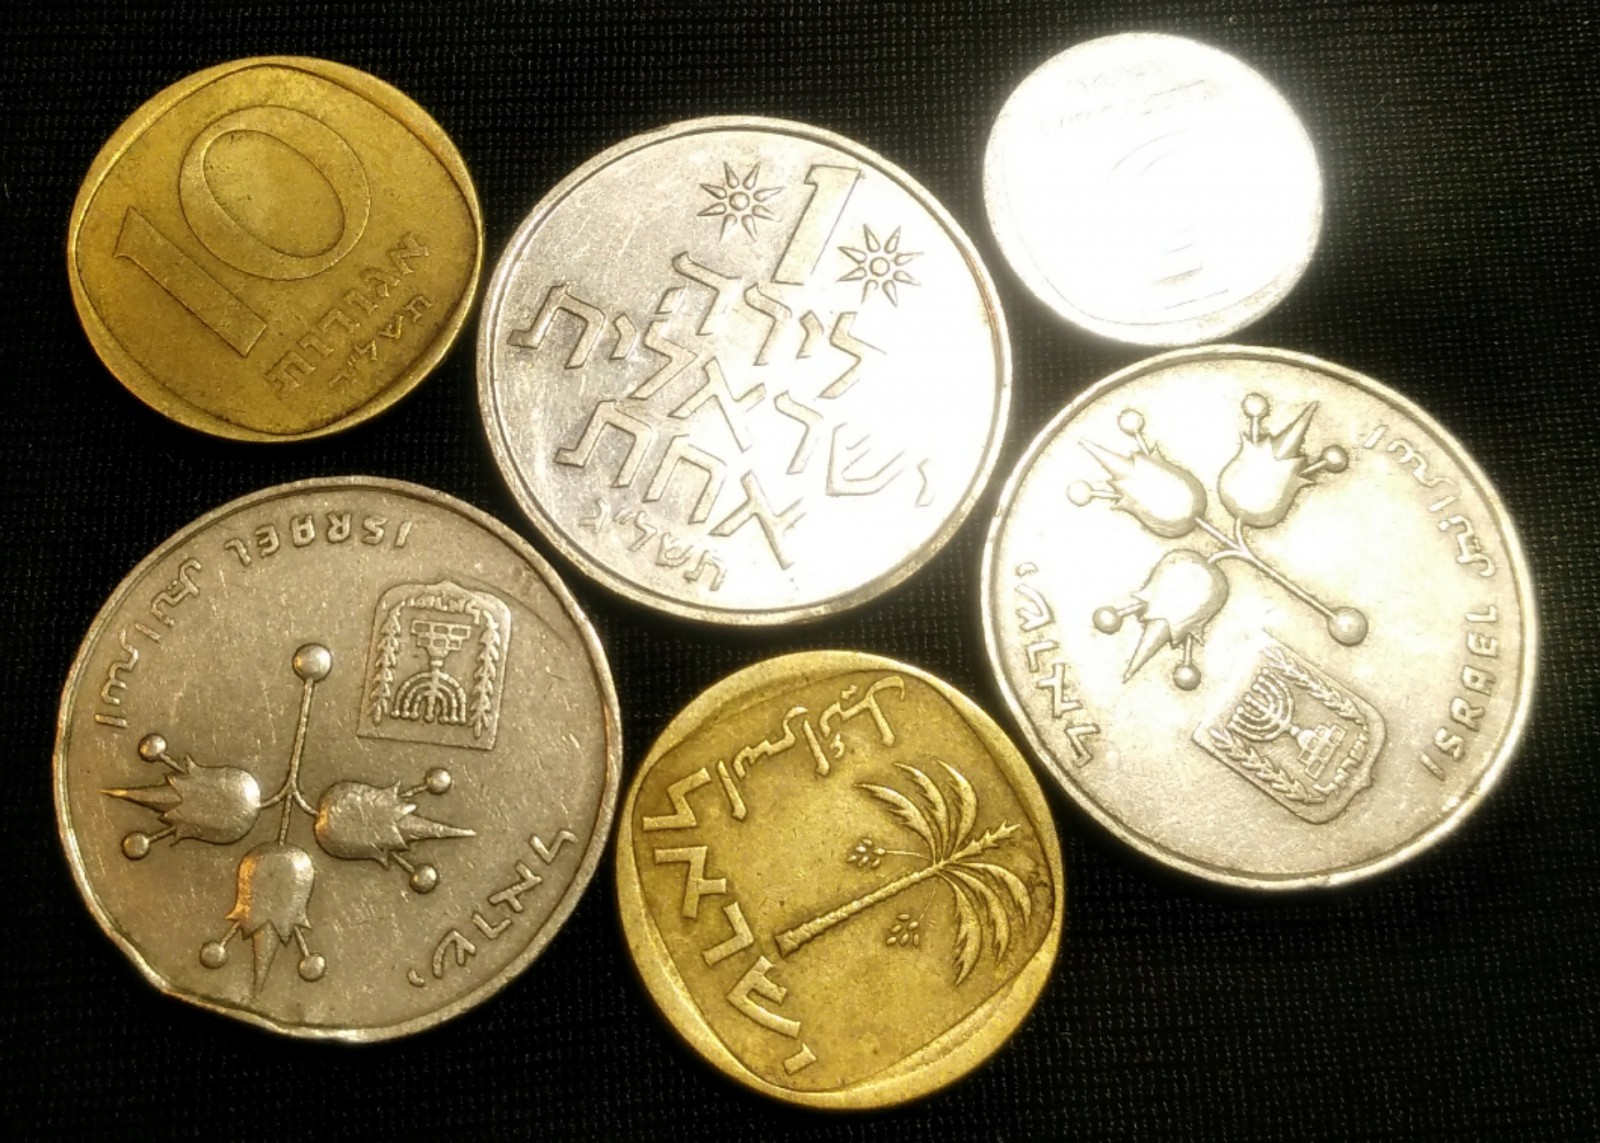 Coins: Israel